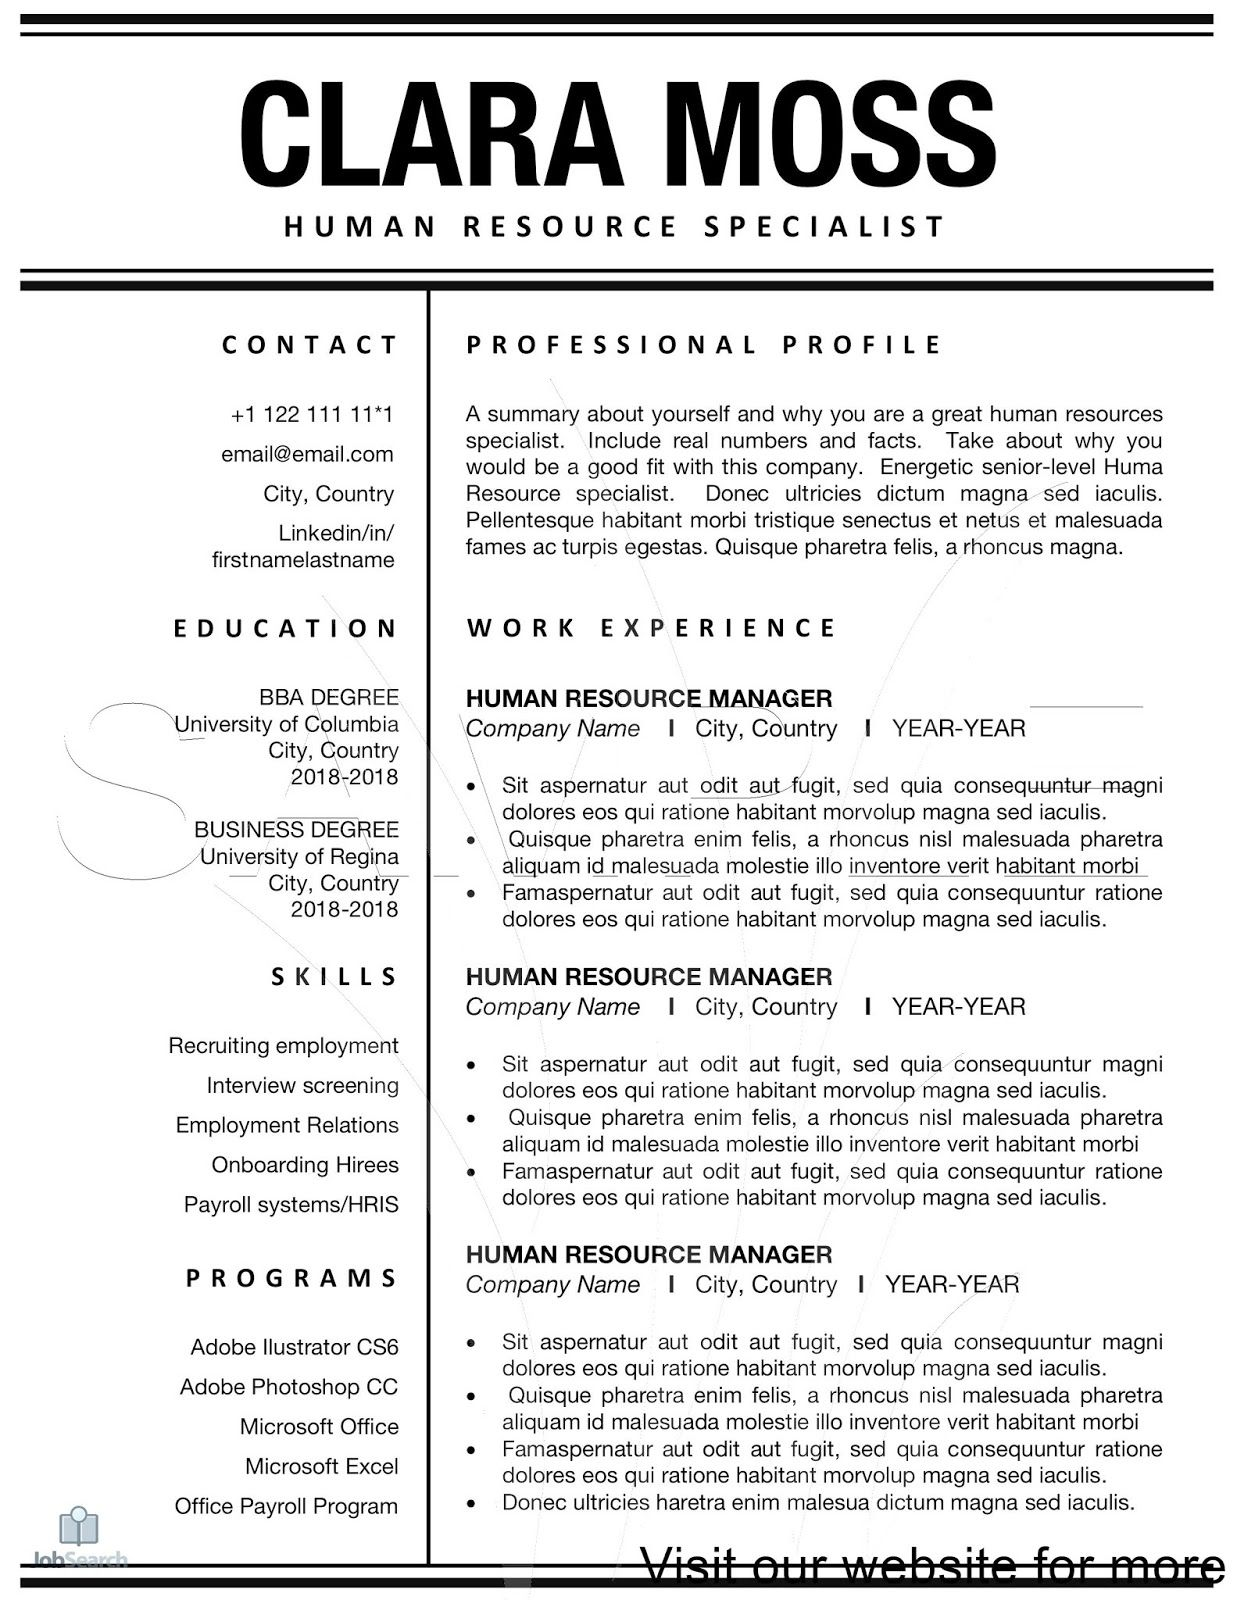 human resources management templates, career, pictures